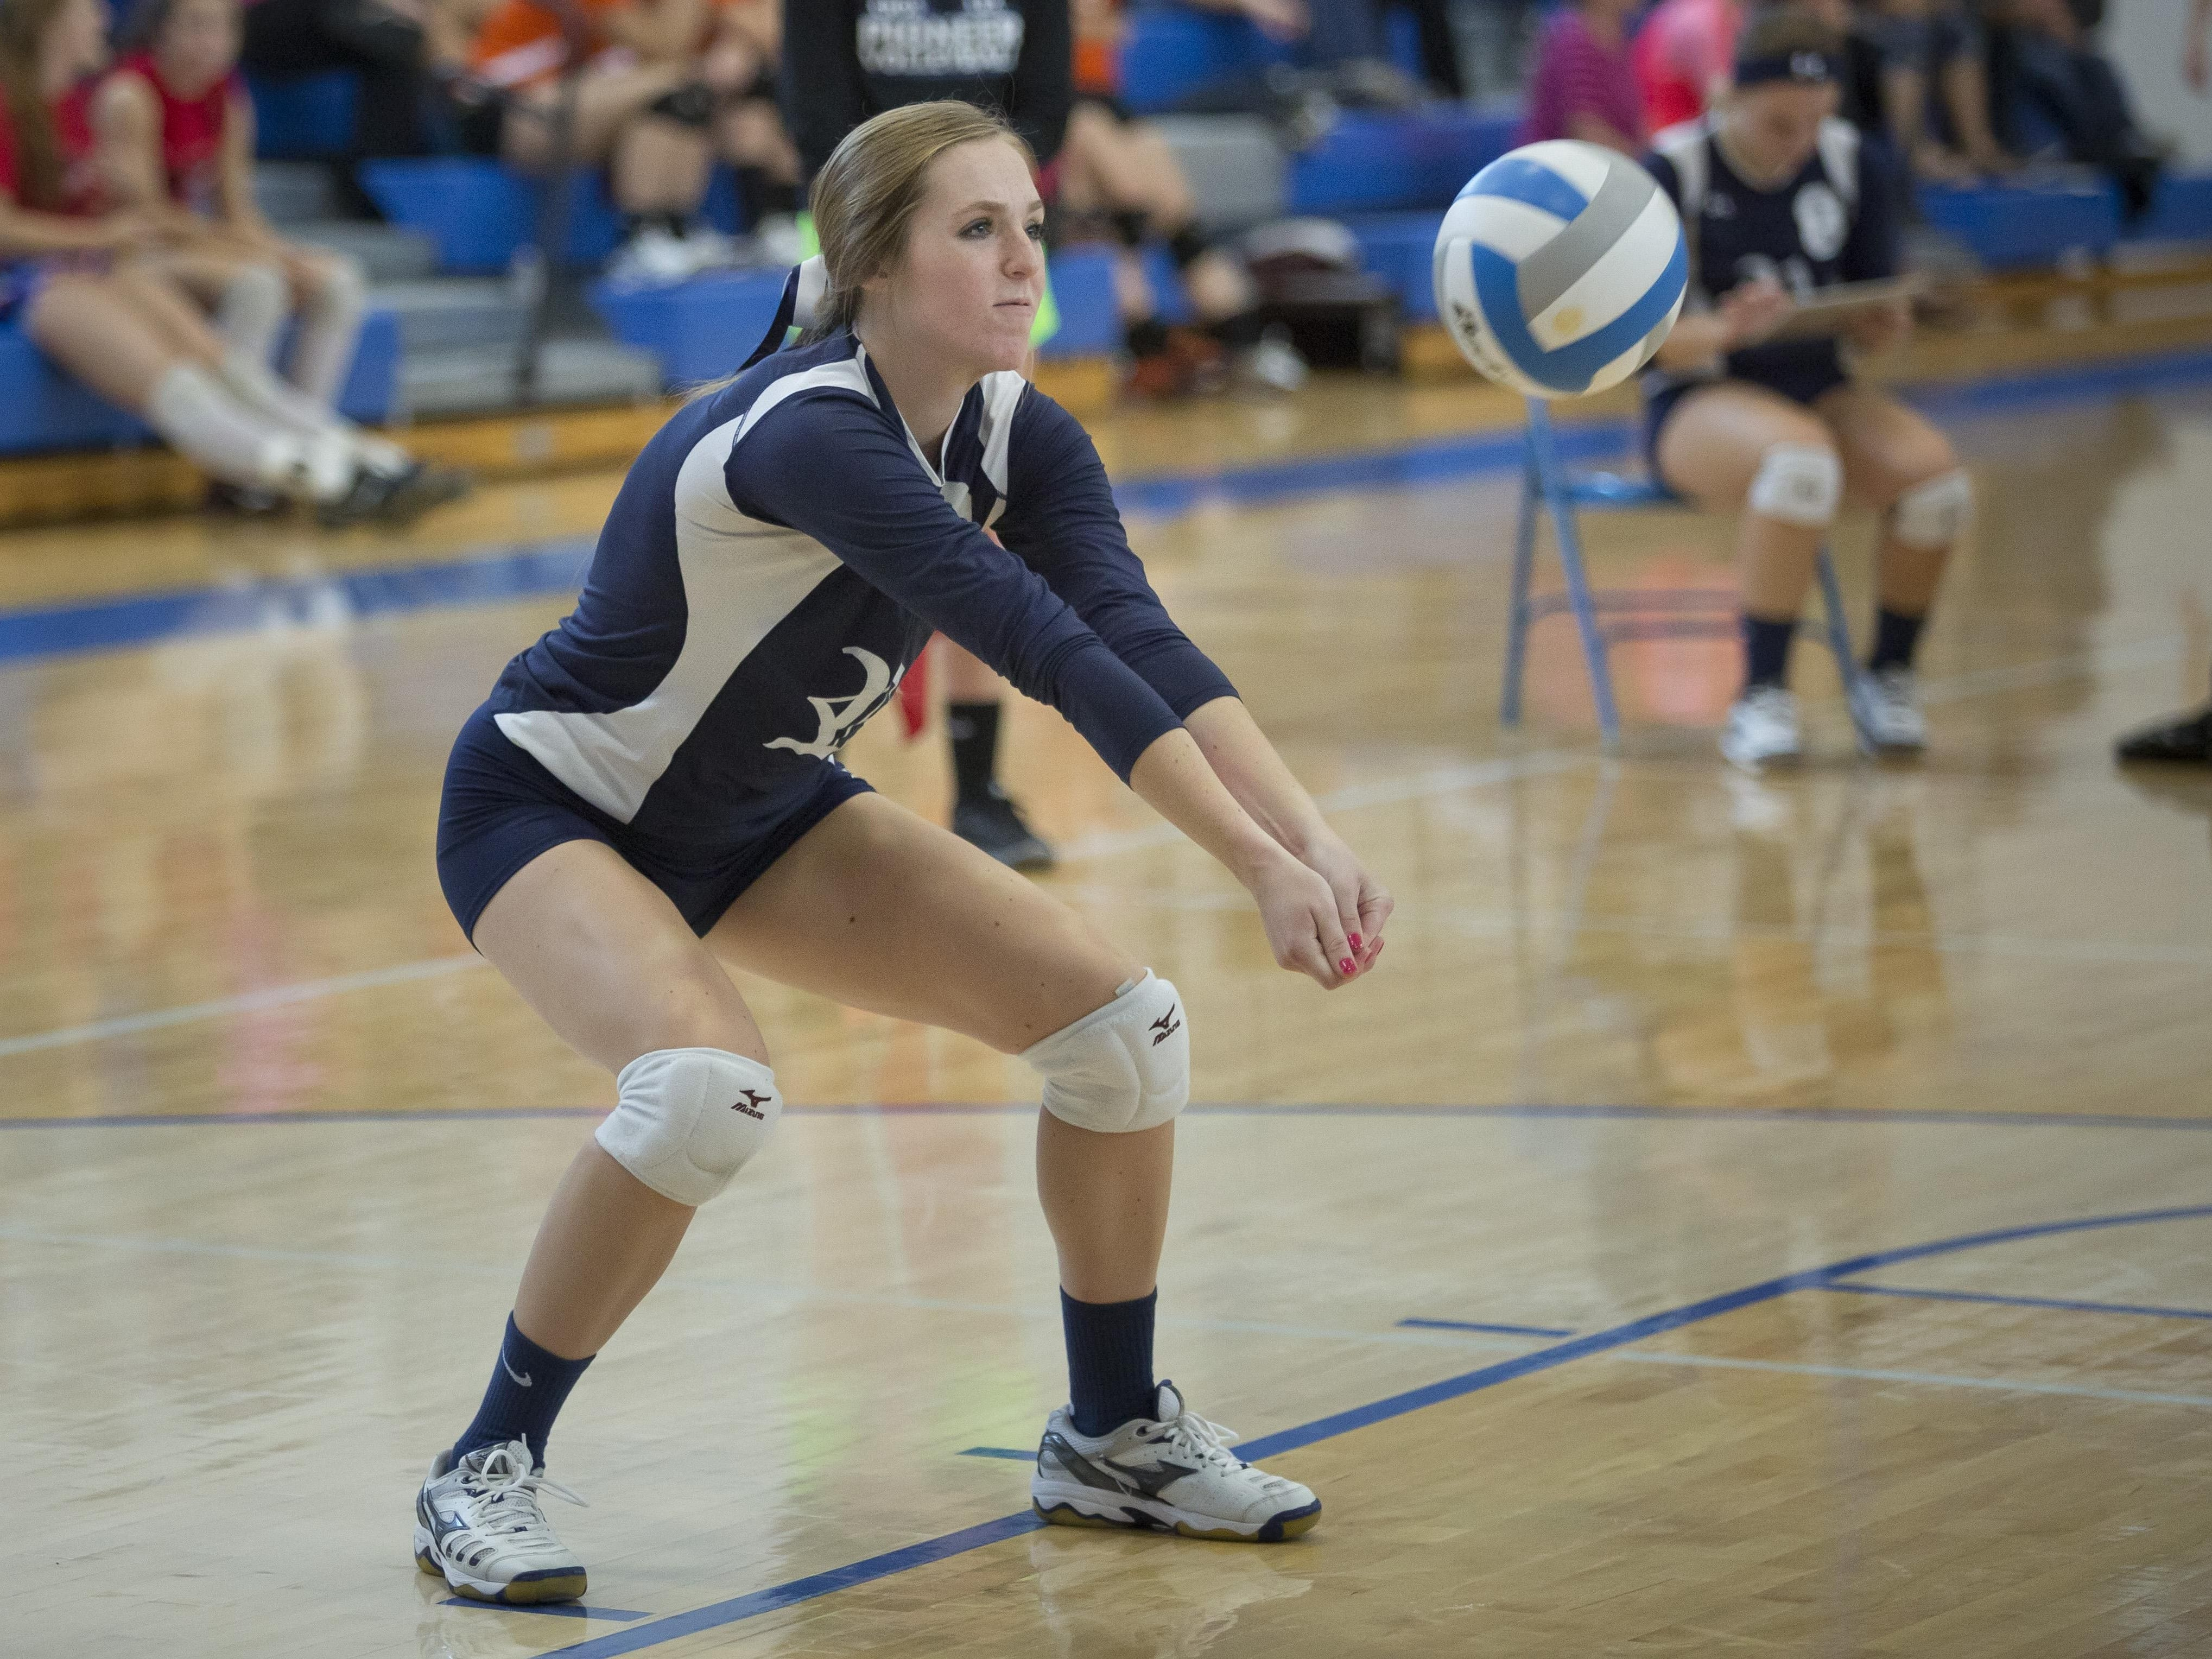 Richmond's Lindsay Schweiger bumps the ball during the Pioneer Volleyball Invitational Saturday, September 12, 2015 at Cros-Lex High School.